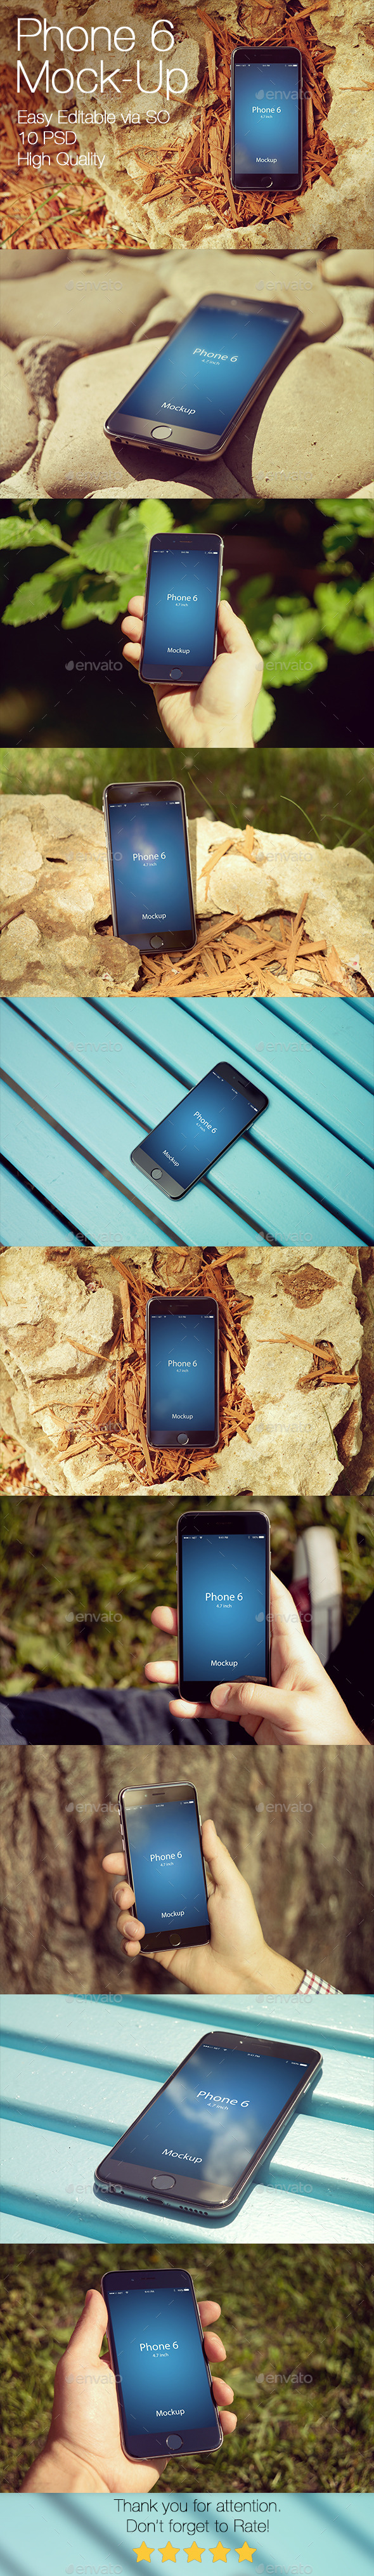 Phone 6 Mockup v3 - Mobile Displays